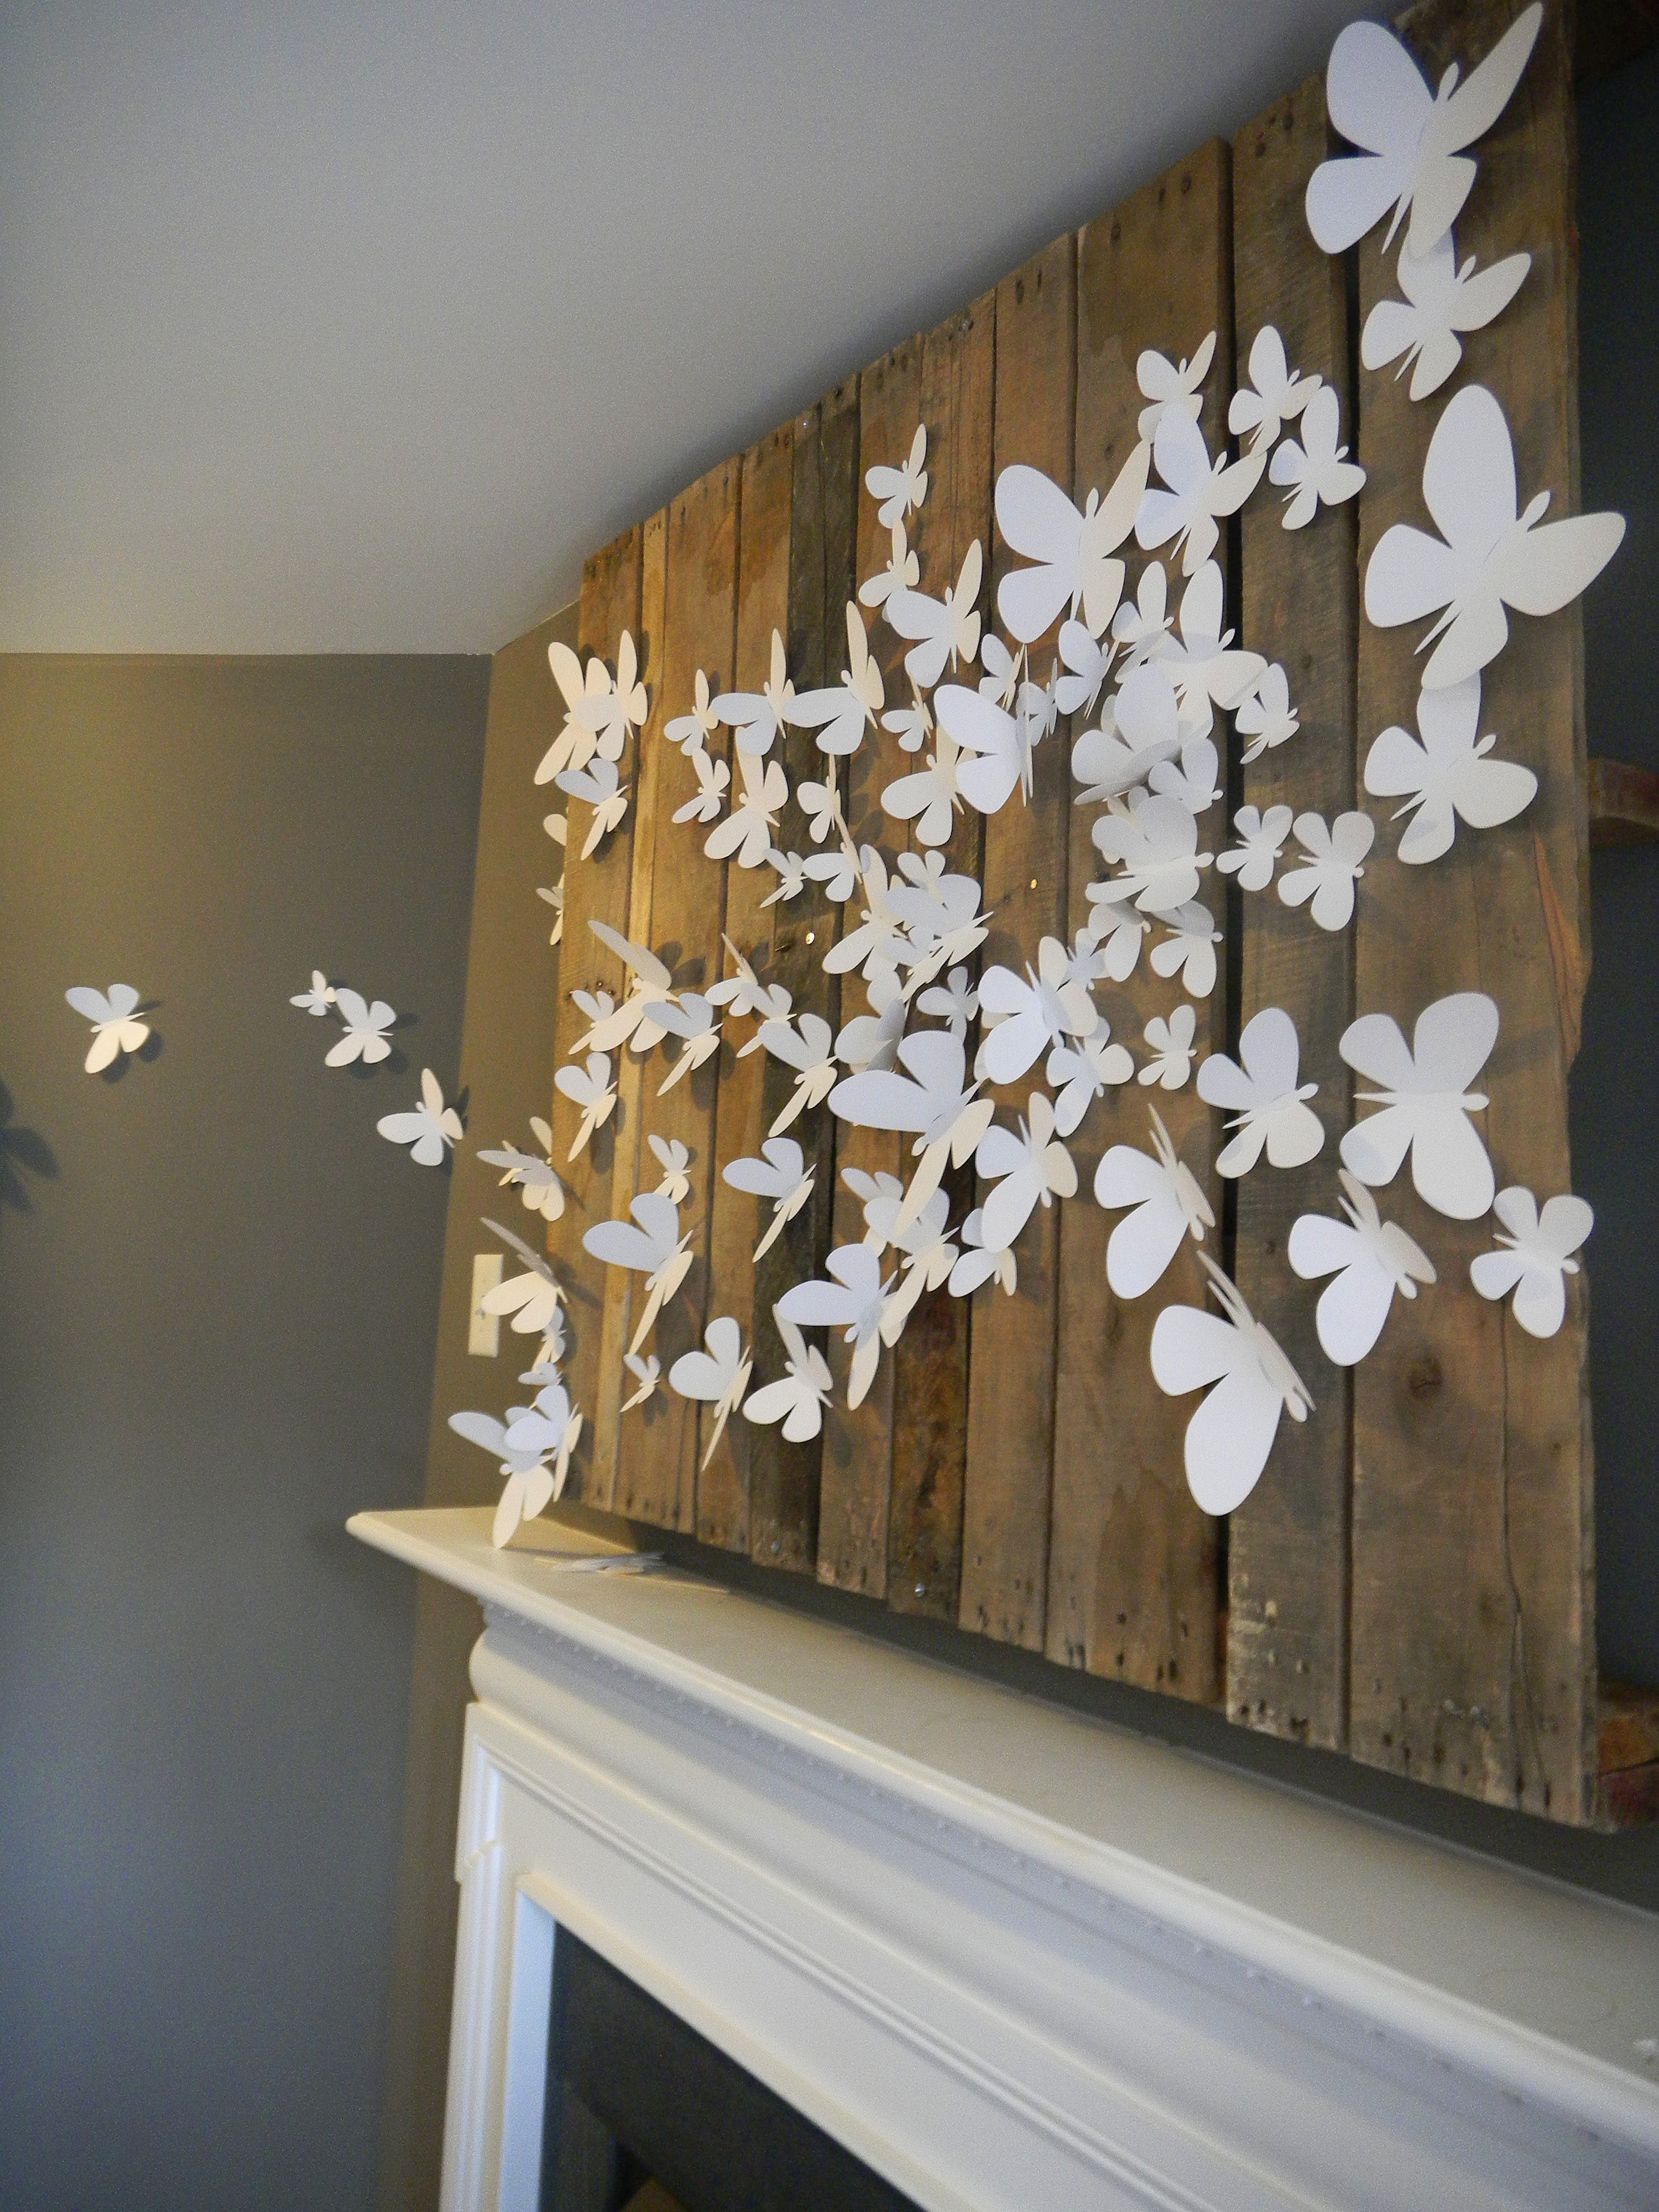 Newest Amazing Butterfly Wall Art 3D 2 #26931 In 3D Modern Wall Art (View 10 of 15)